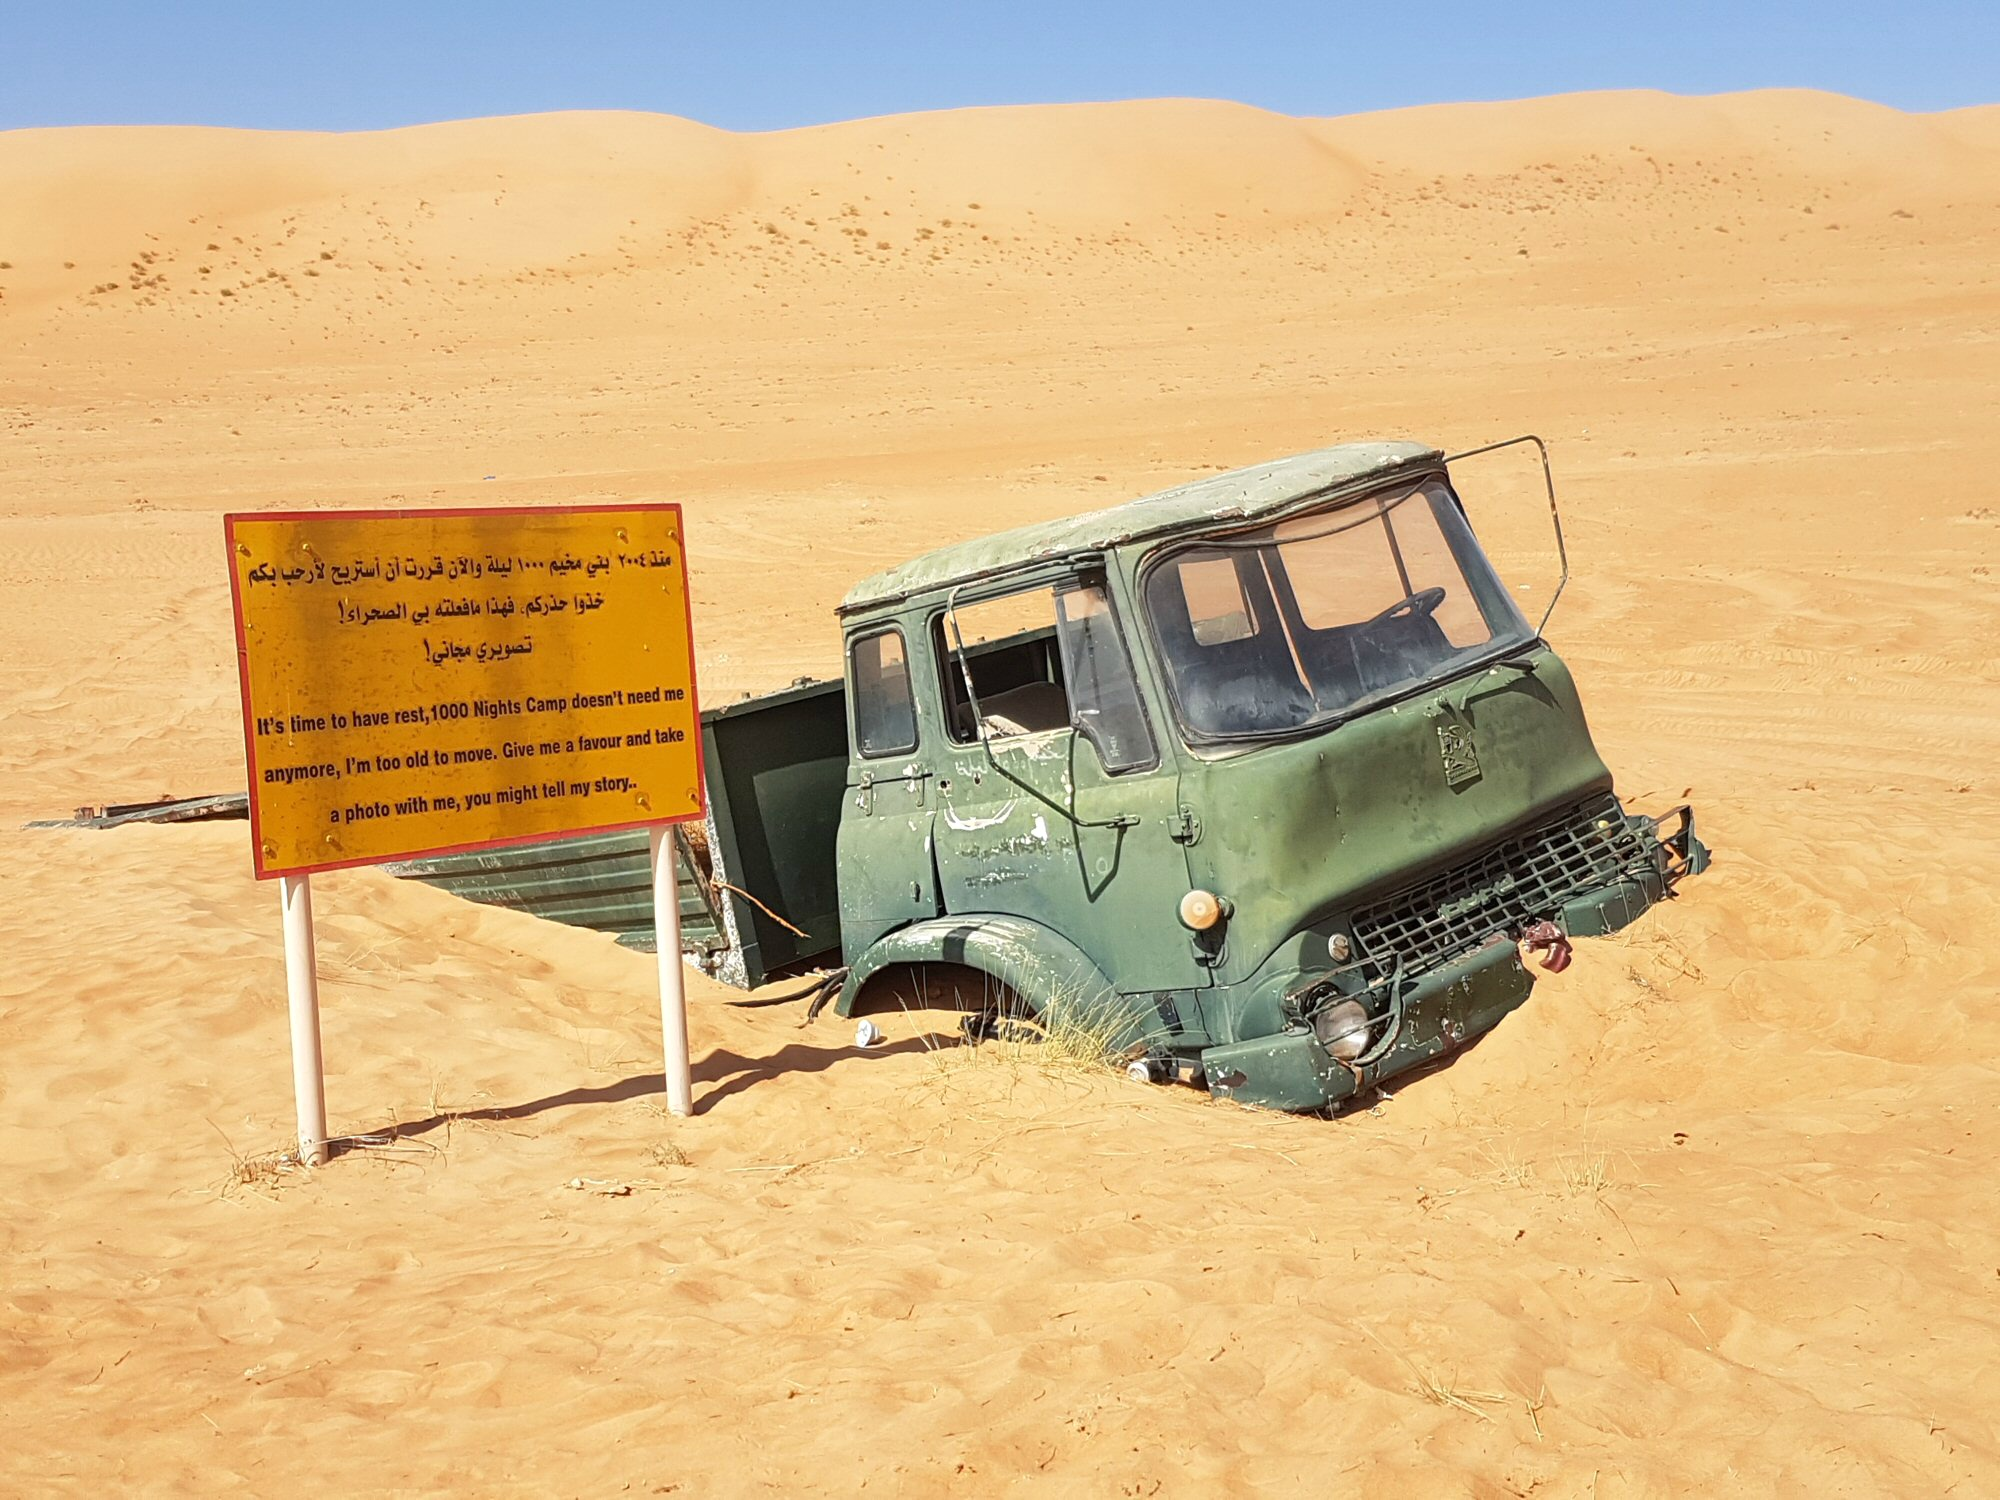 A half buried truck in the sand outside the 1000 Nights Camp at Wahiba Sands in Oman - my nine reasons to visit Oman with kids